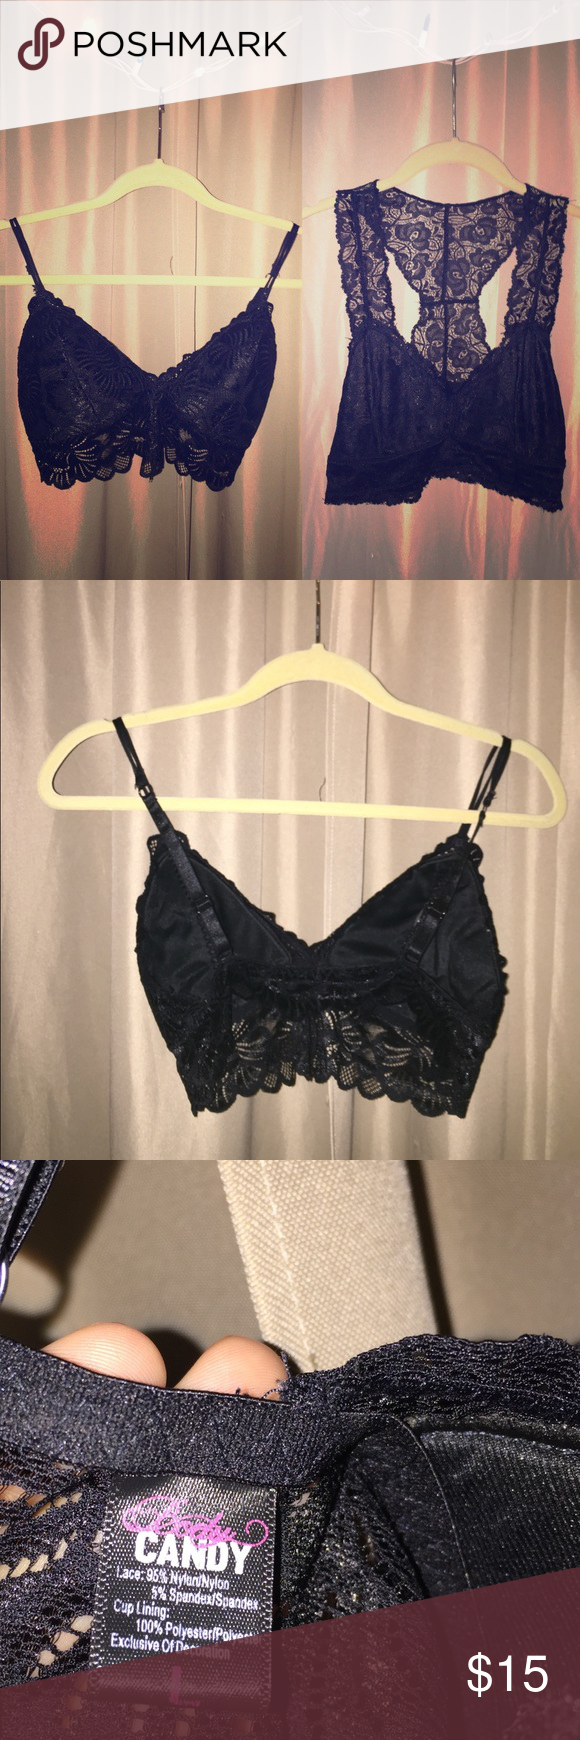 33daf484d7 ... Lace Bralettes Both bralettes come together in the order  ) Both in  great condition and can fit a size C-cup or smaller! Intimates   Sleepwear  Bras